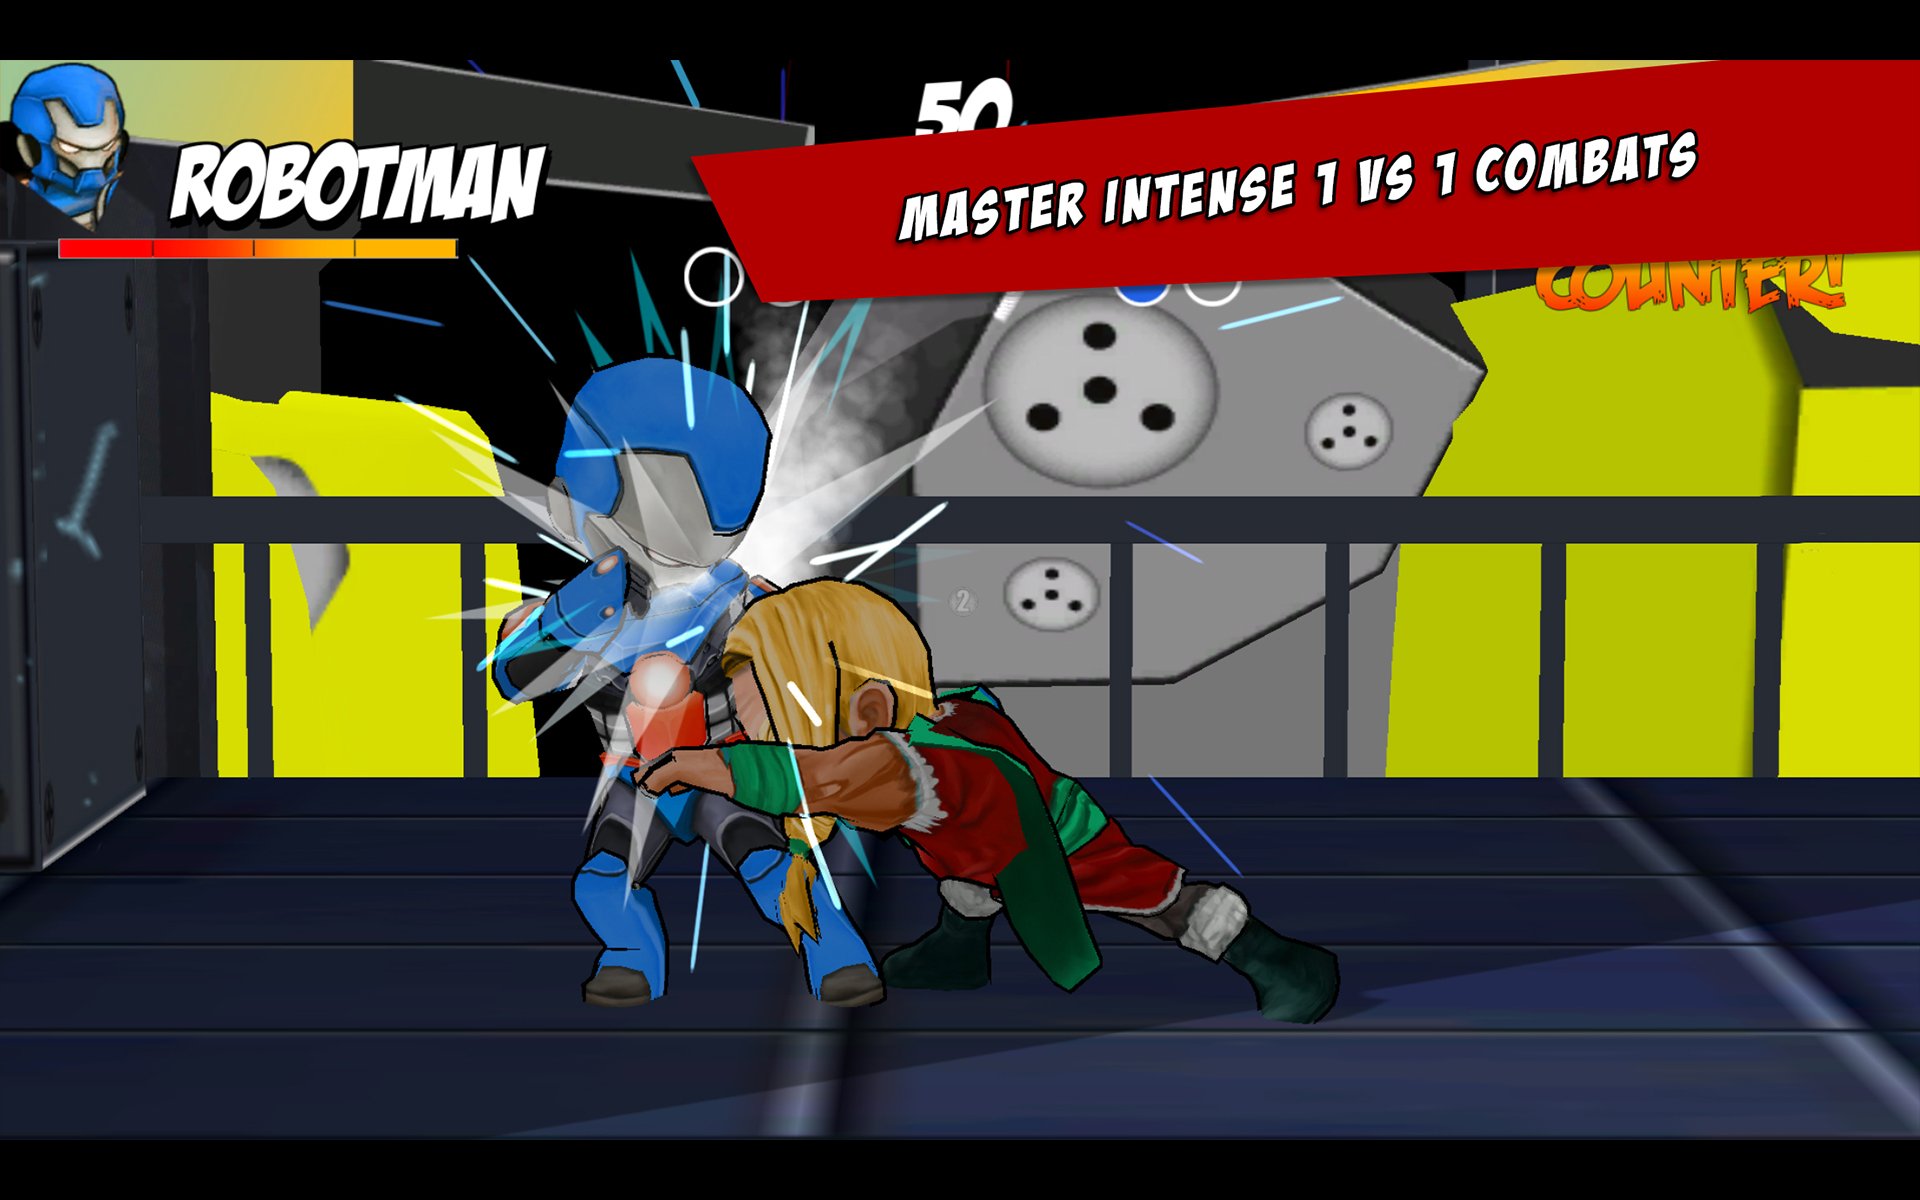 Gif vs games fight animated gif on gifer by moonhammer.